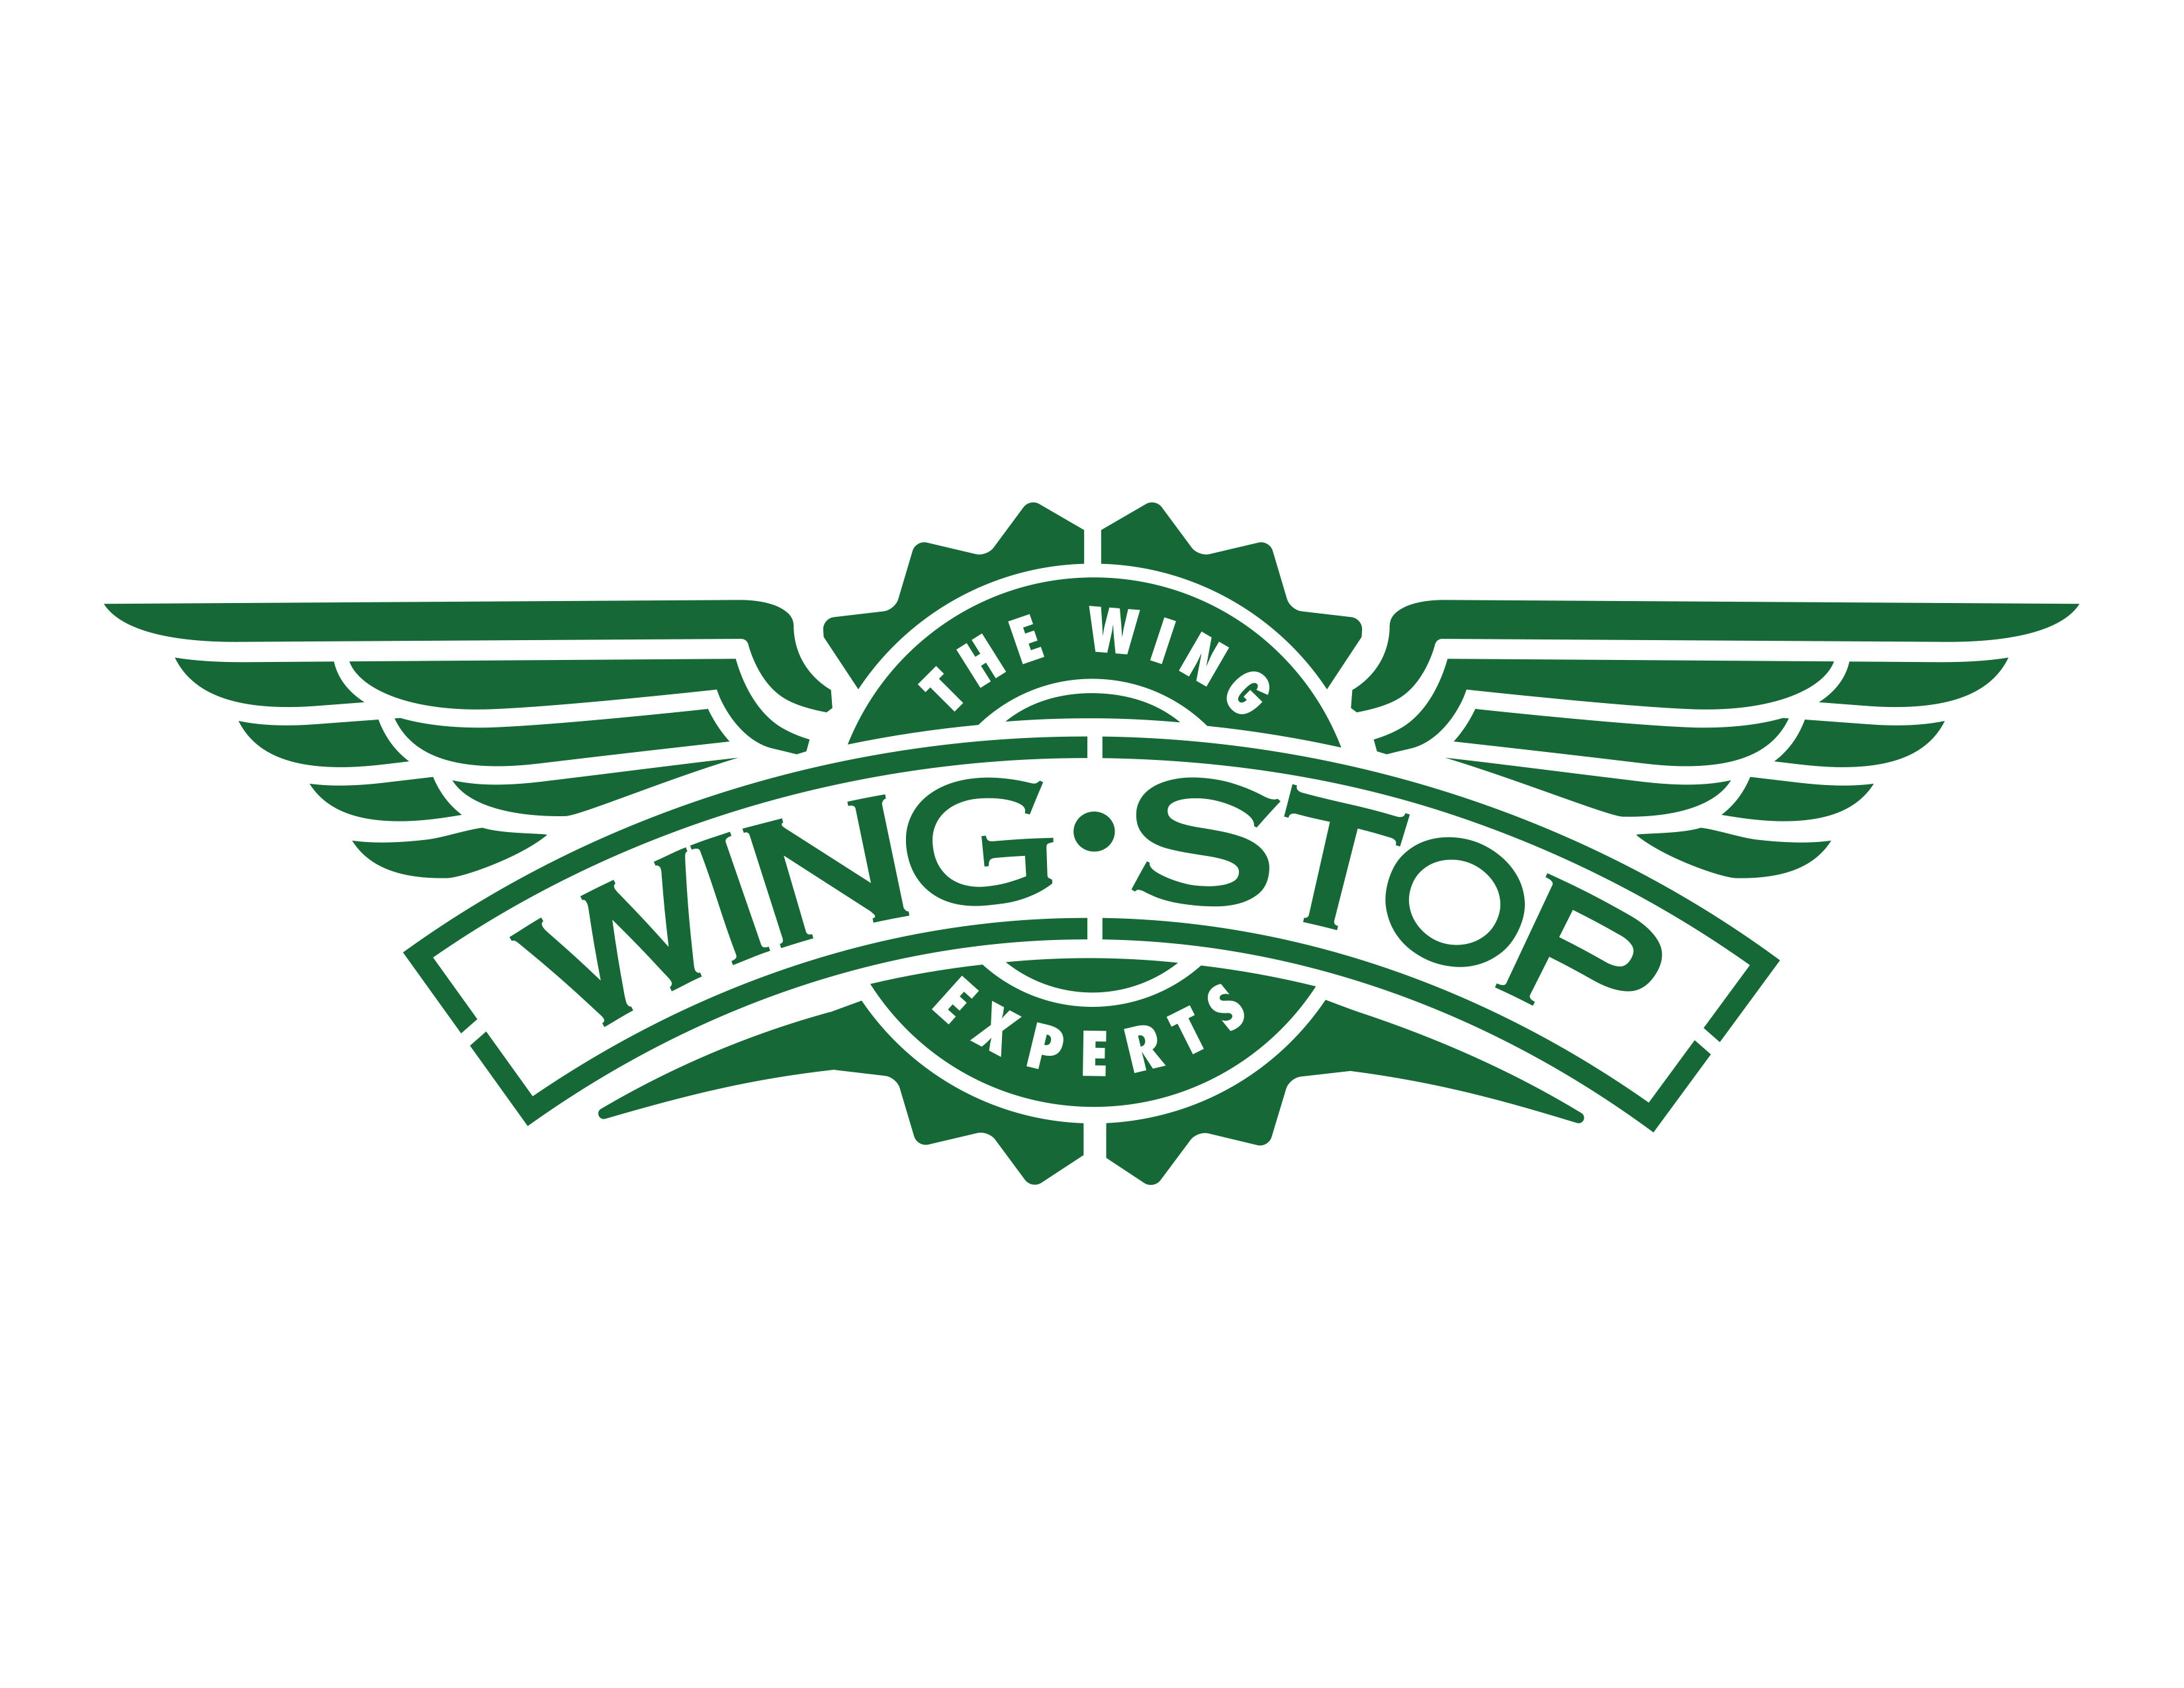 On Tuesday July 26 from 730 830pm Wingstop will be hosting a 3300x2550